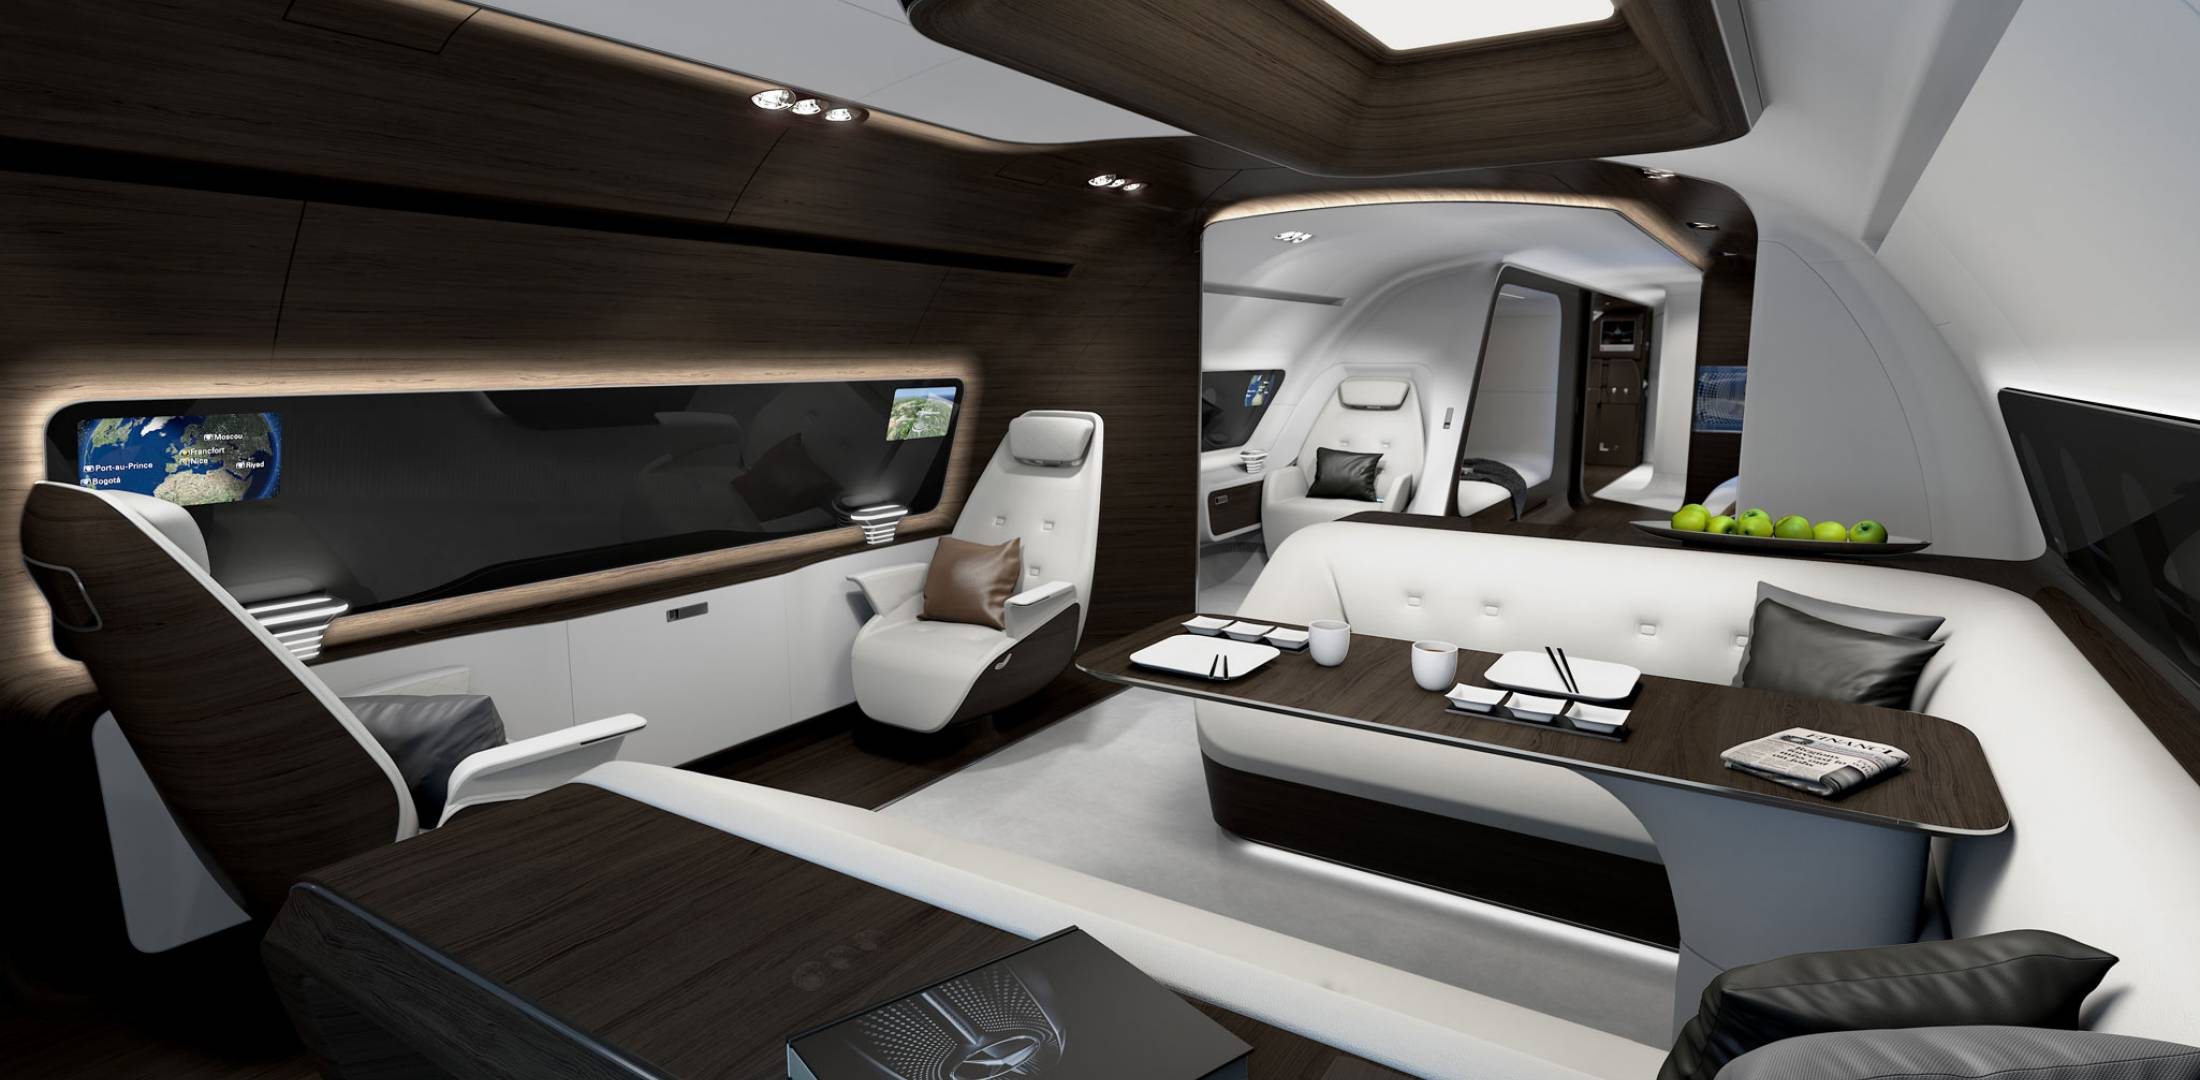 lufthansa technik unveils mercedes bizliner cabin designs business aviation news aviation. Black Bedroom Furniture Sets. Home Design Ideas